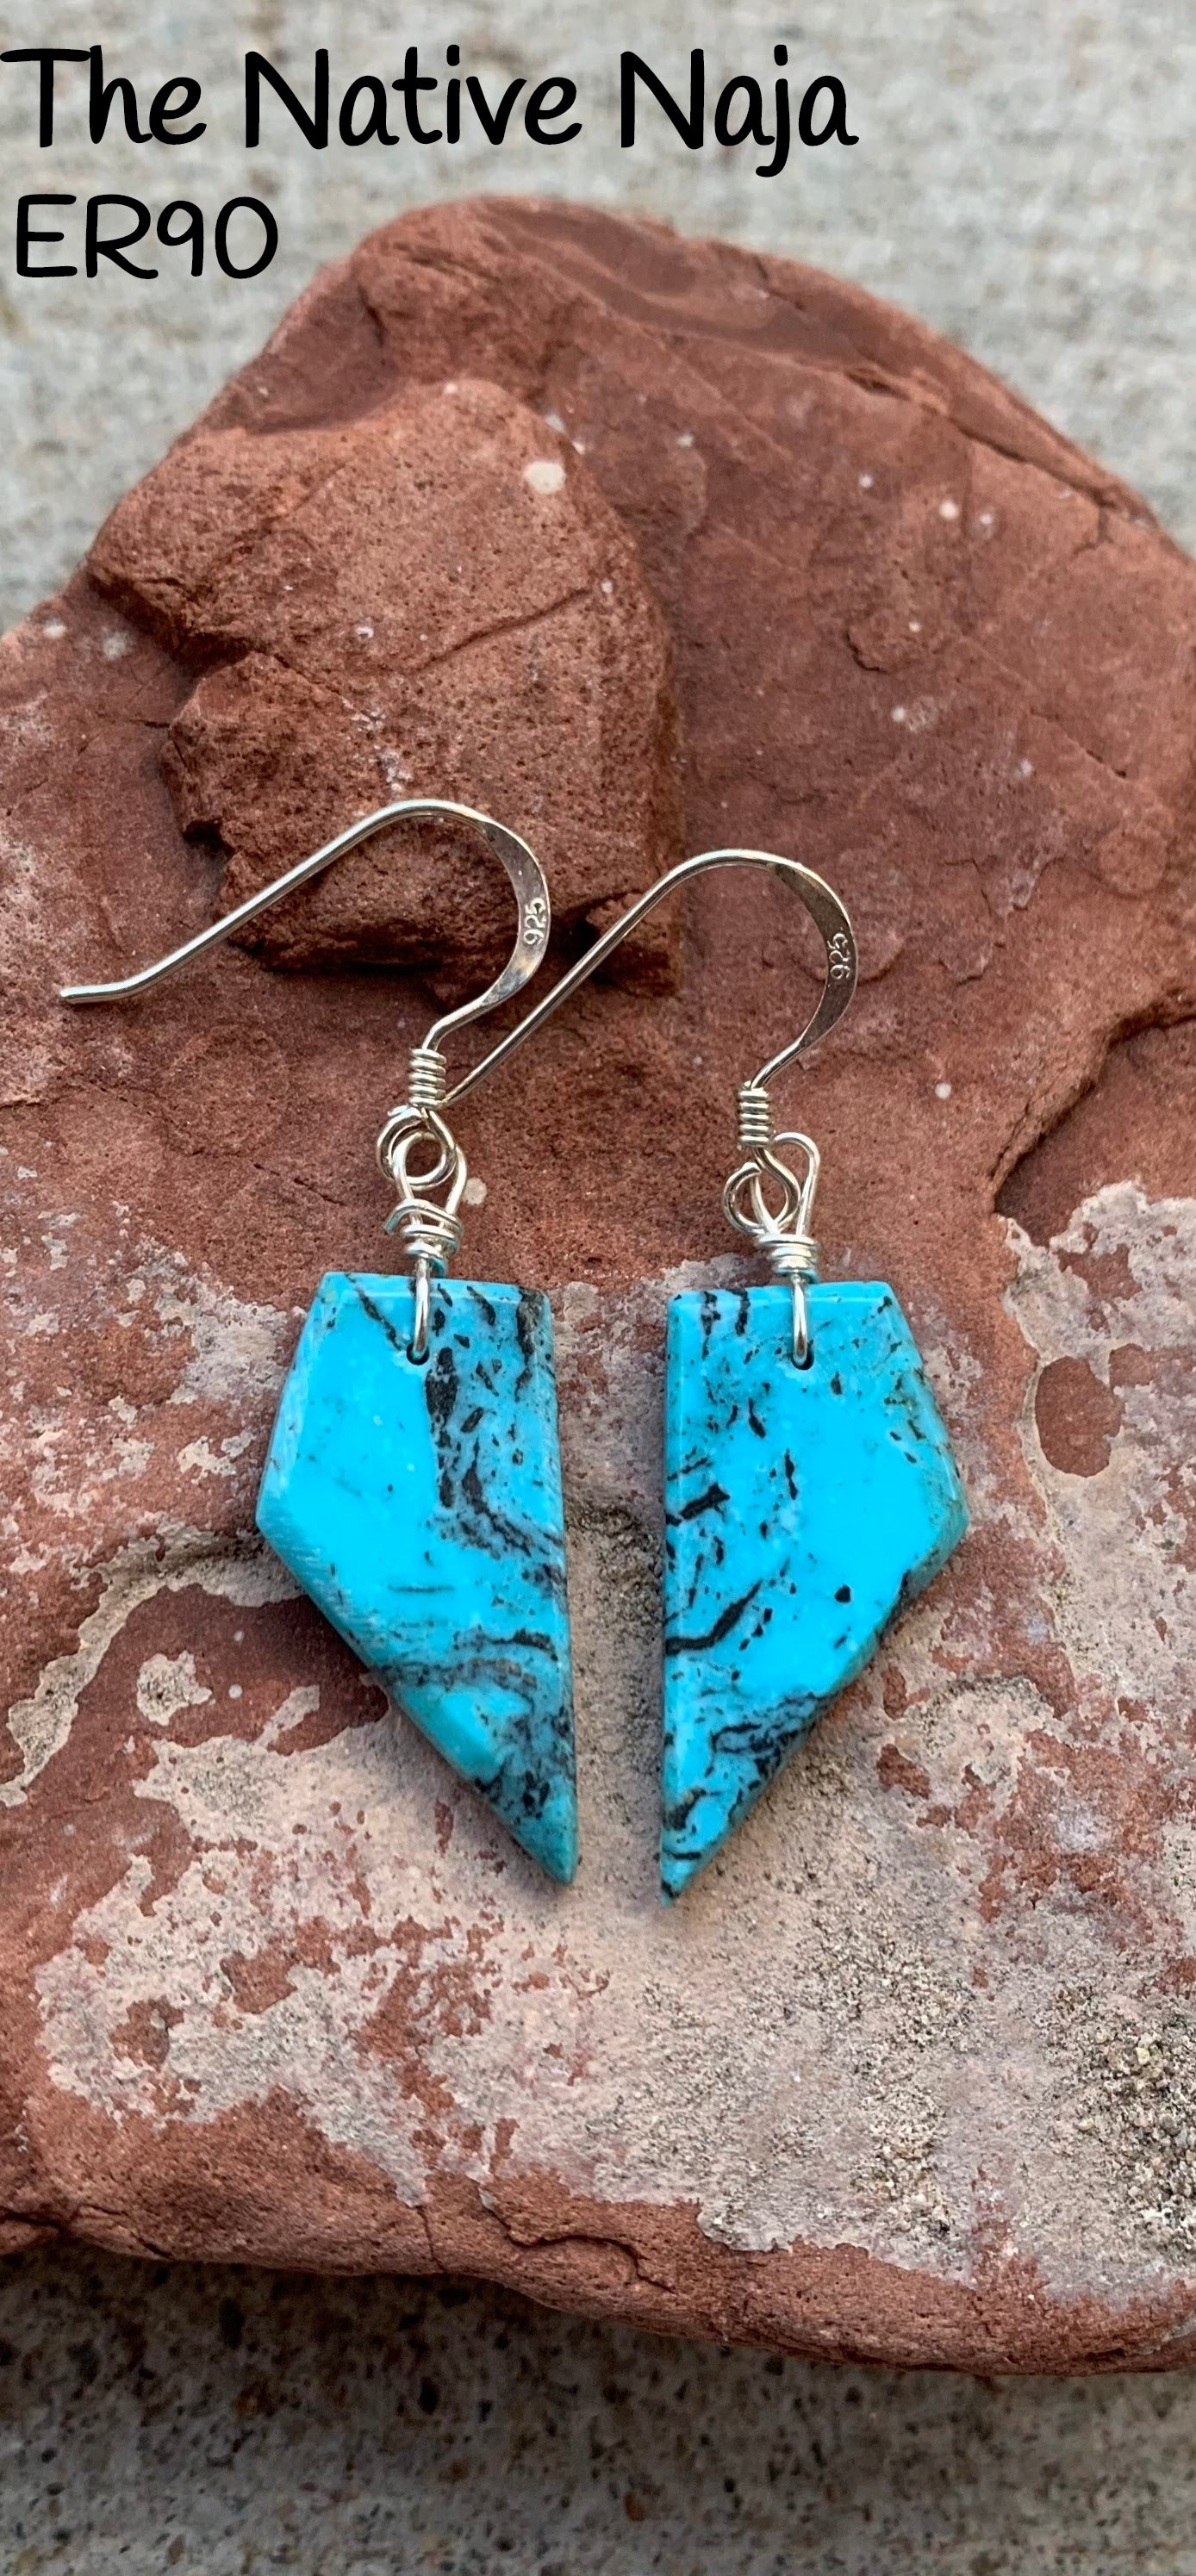 Dainty Navajo Sterling Silver & Genuine Kingman Turquoise French Hook Slab Earrings ER90